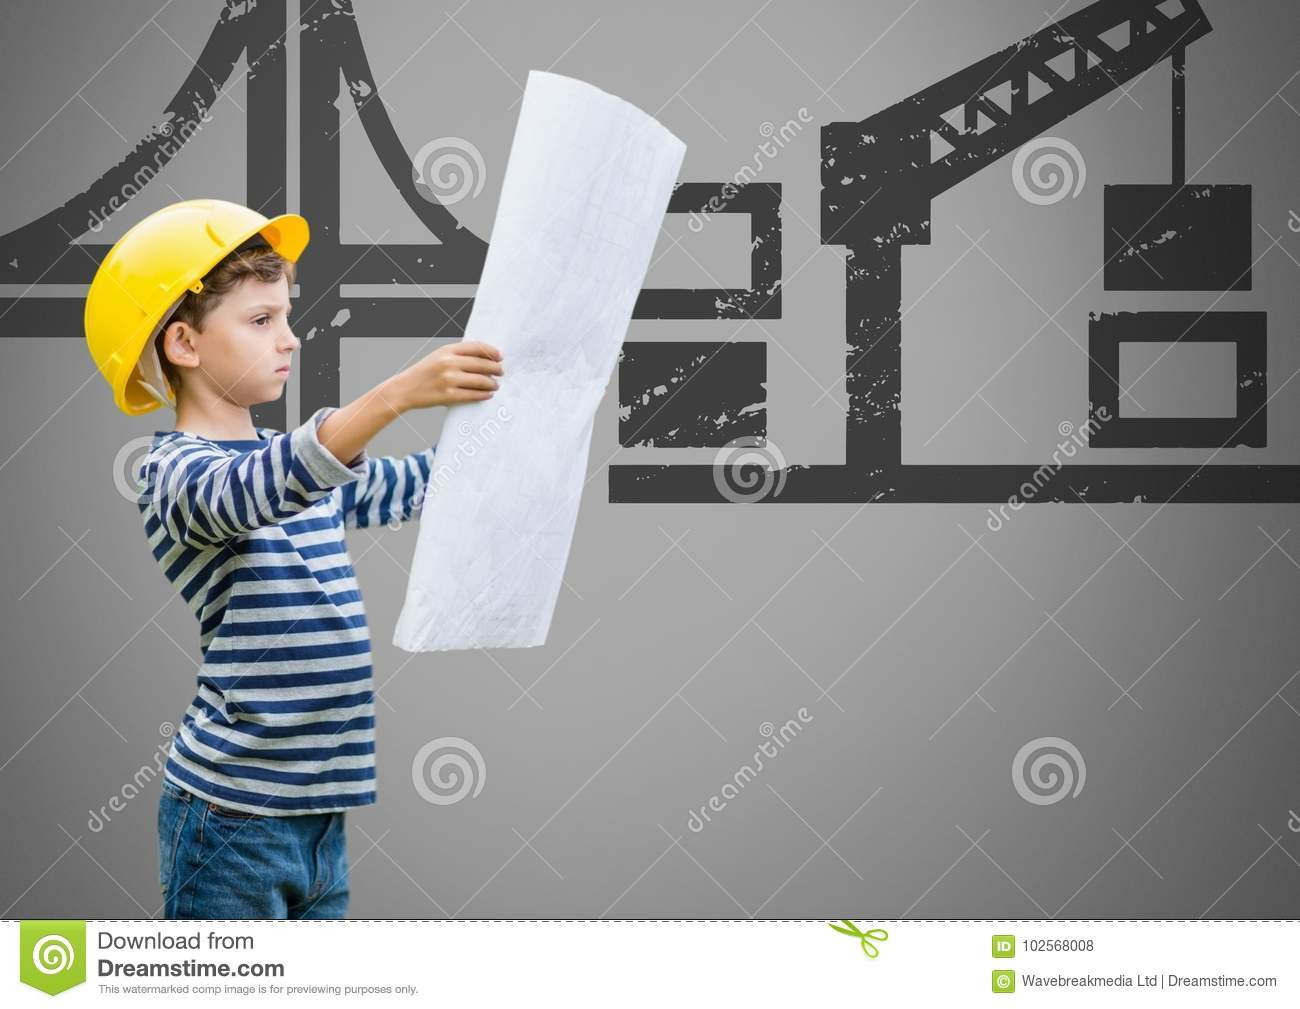 Boy against grey background with building plans blueprint and download boy against grey background with building plans blueprint and construction illustrations stock illustration illustration malvernweather Gallery